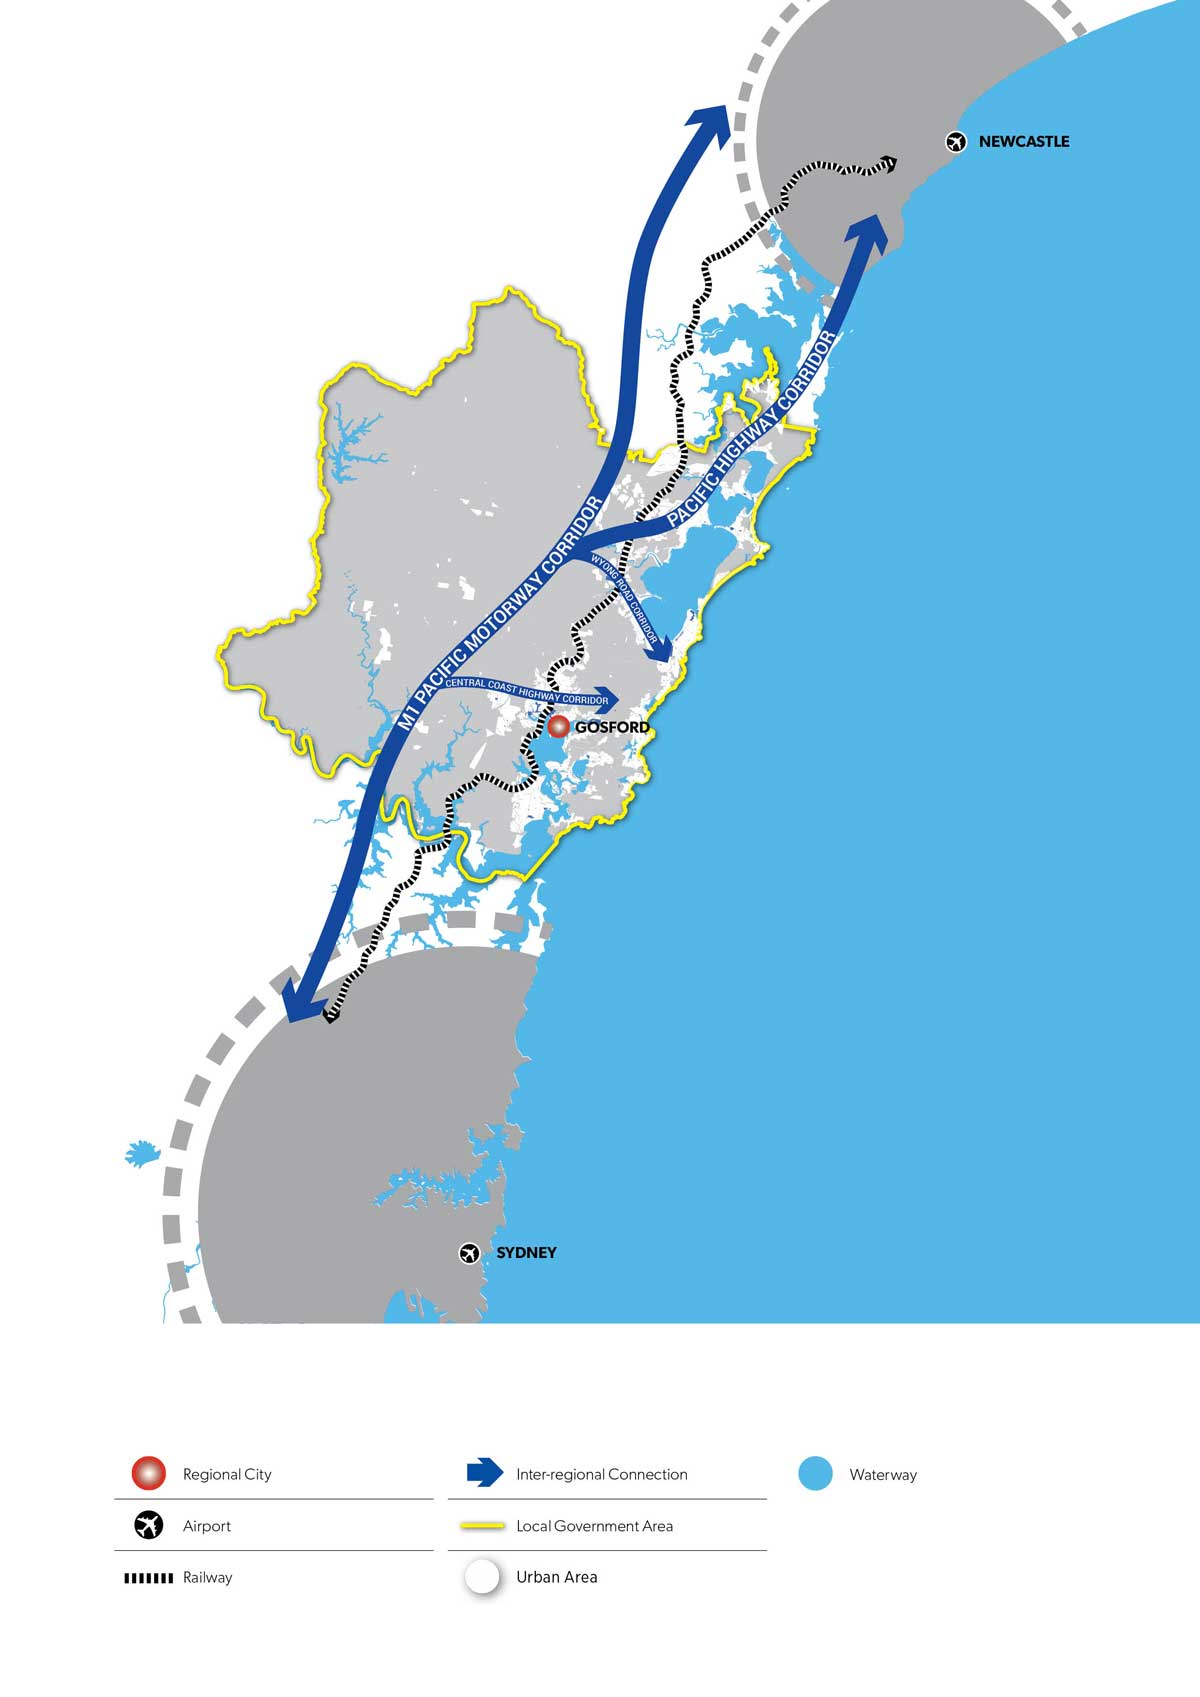 central_coast_inter_regional_transport_connections_map_1200x1697